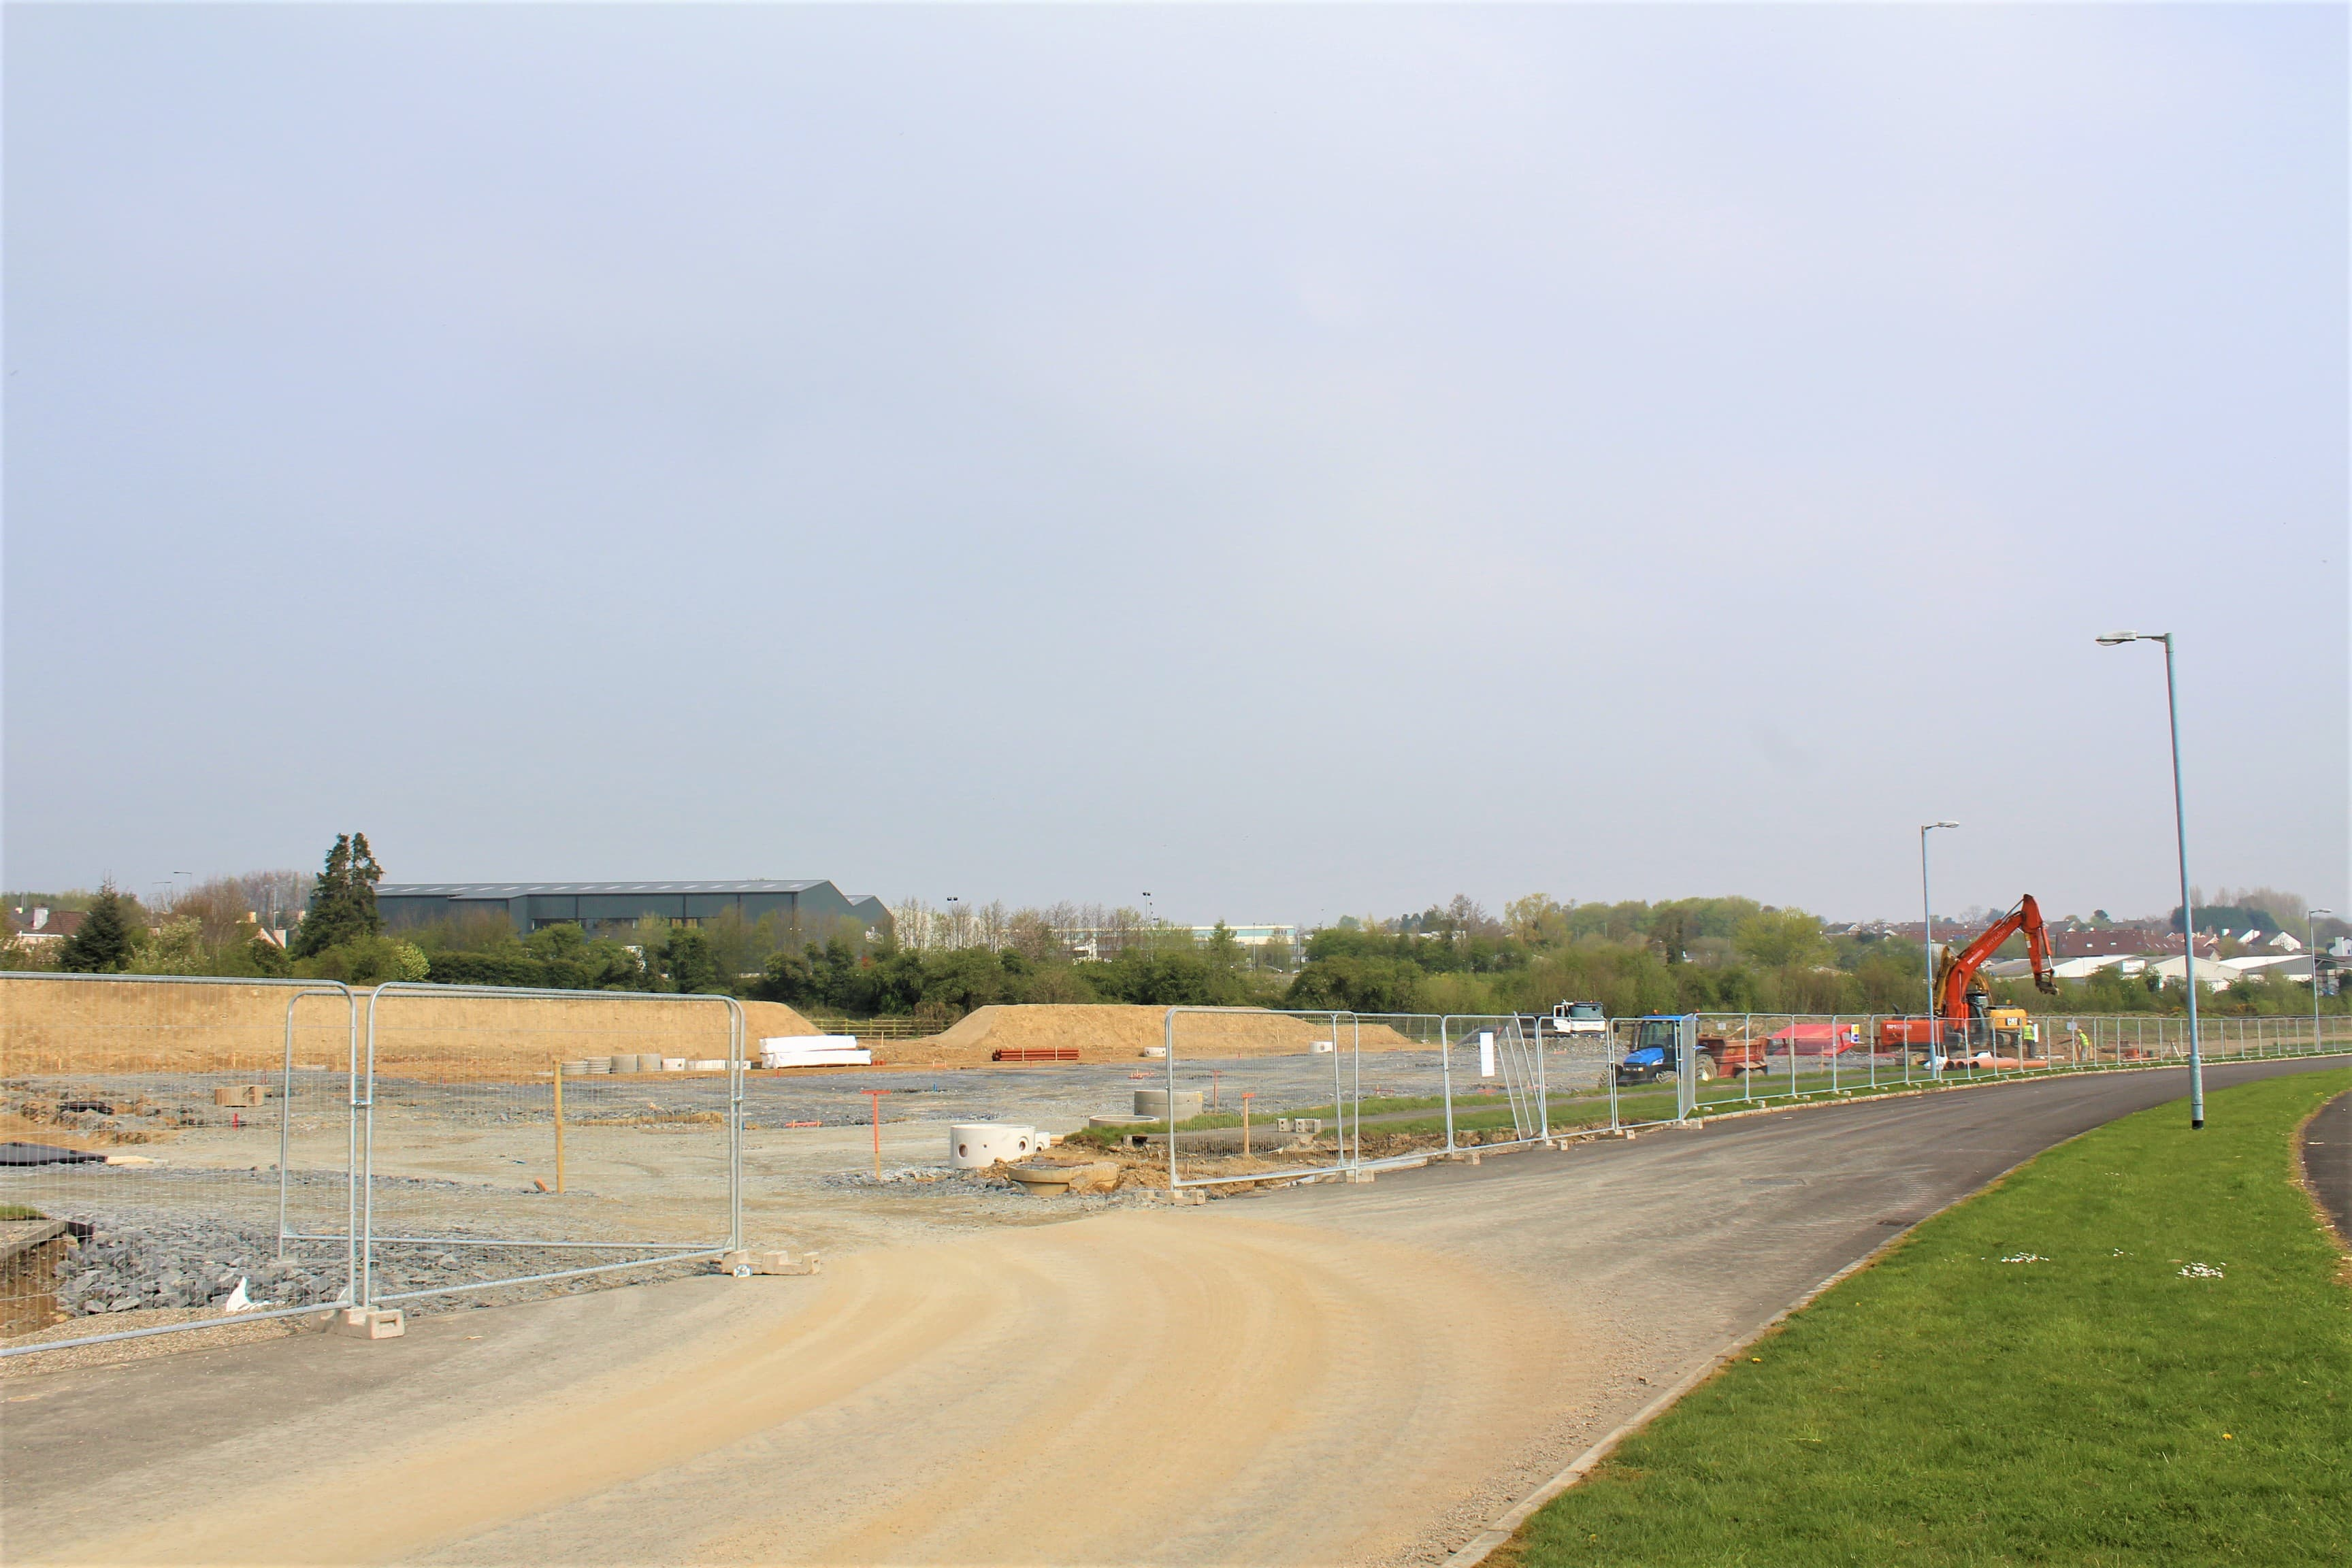 It's week 2 of our factory build at Strabane Business Park and the foundations and ground levels are quickly taking shape! Read more.